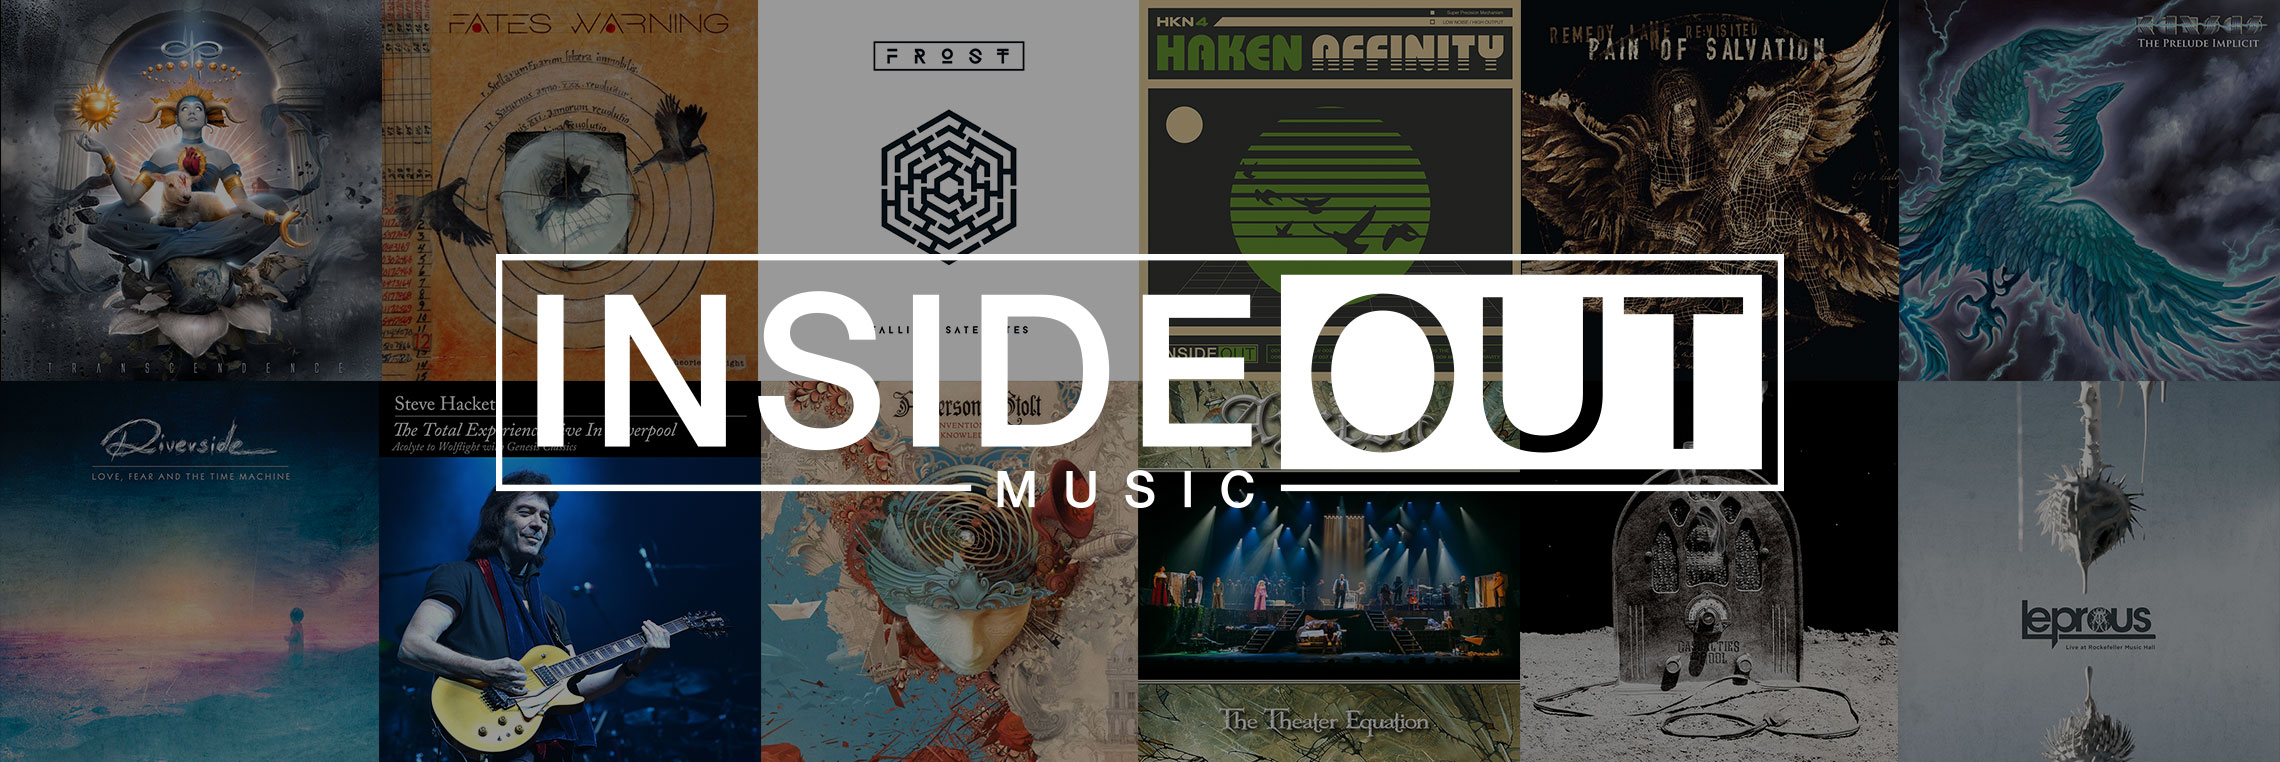 Indie Out Music on IndieMerchstore